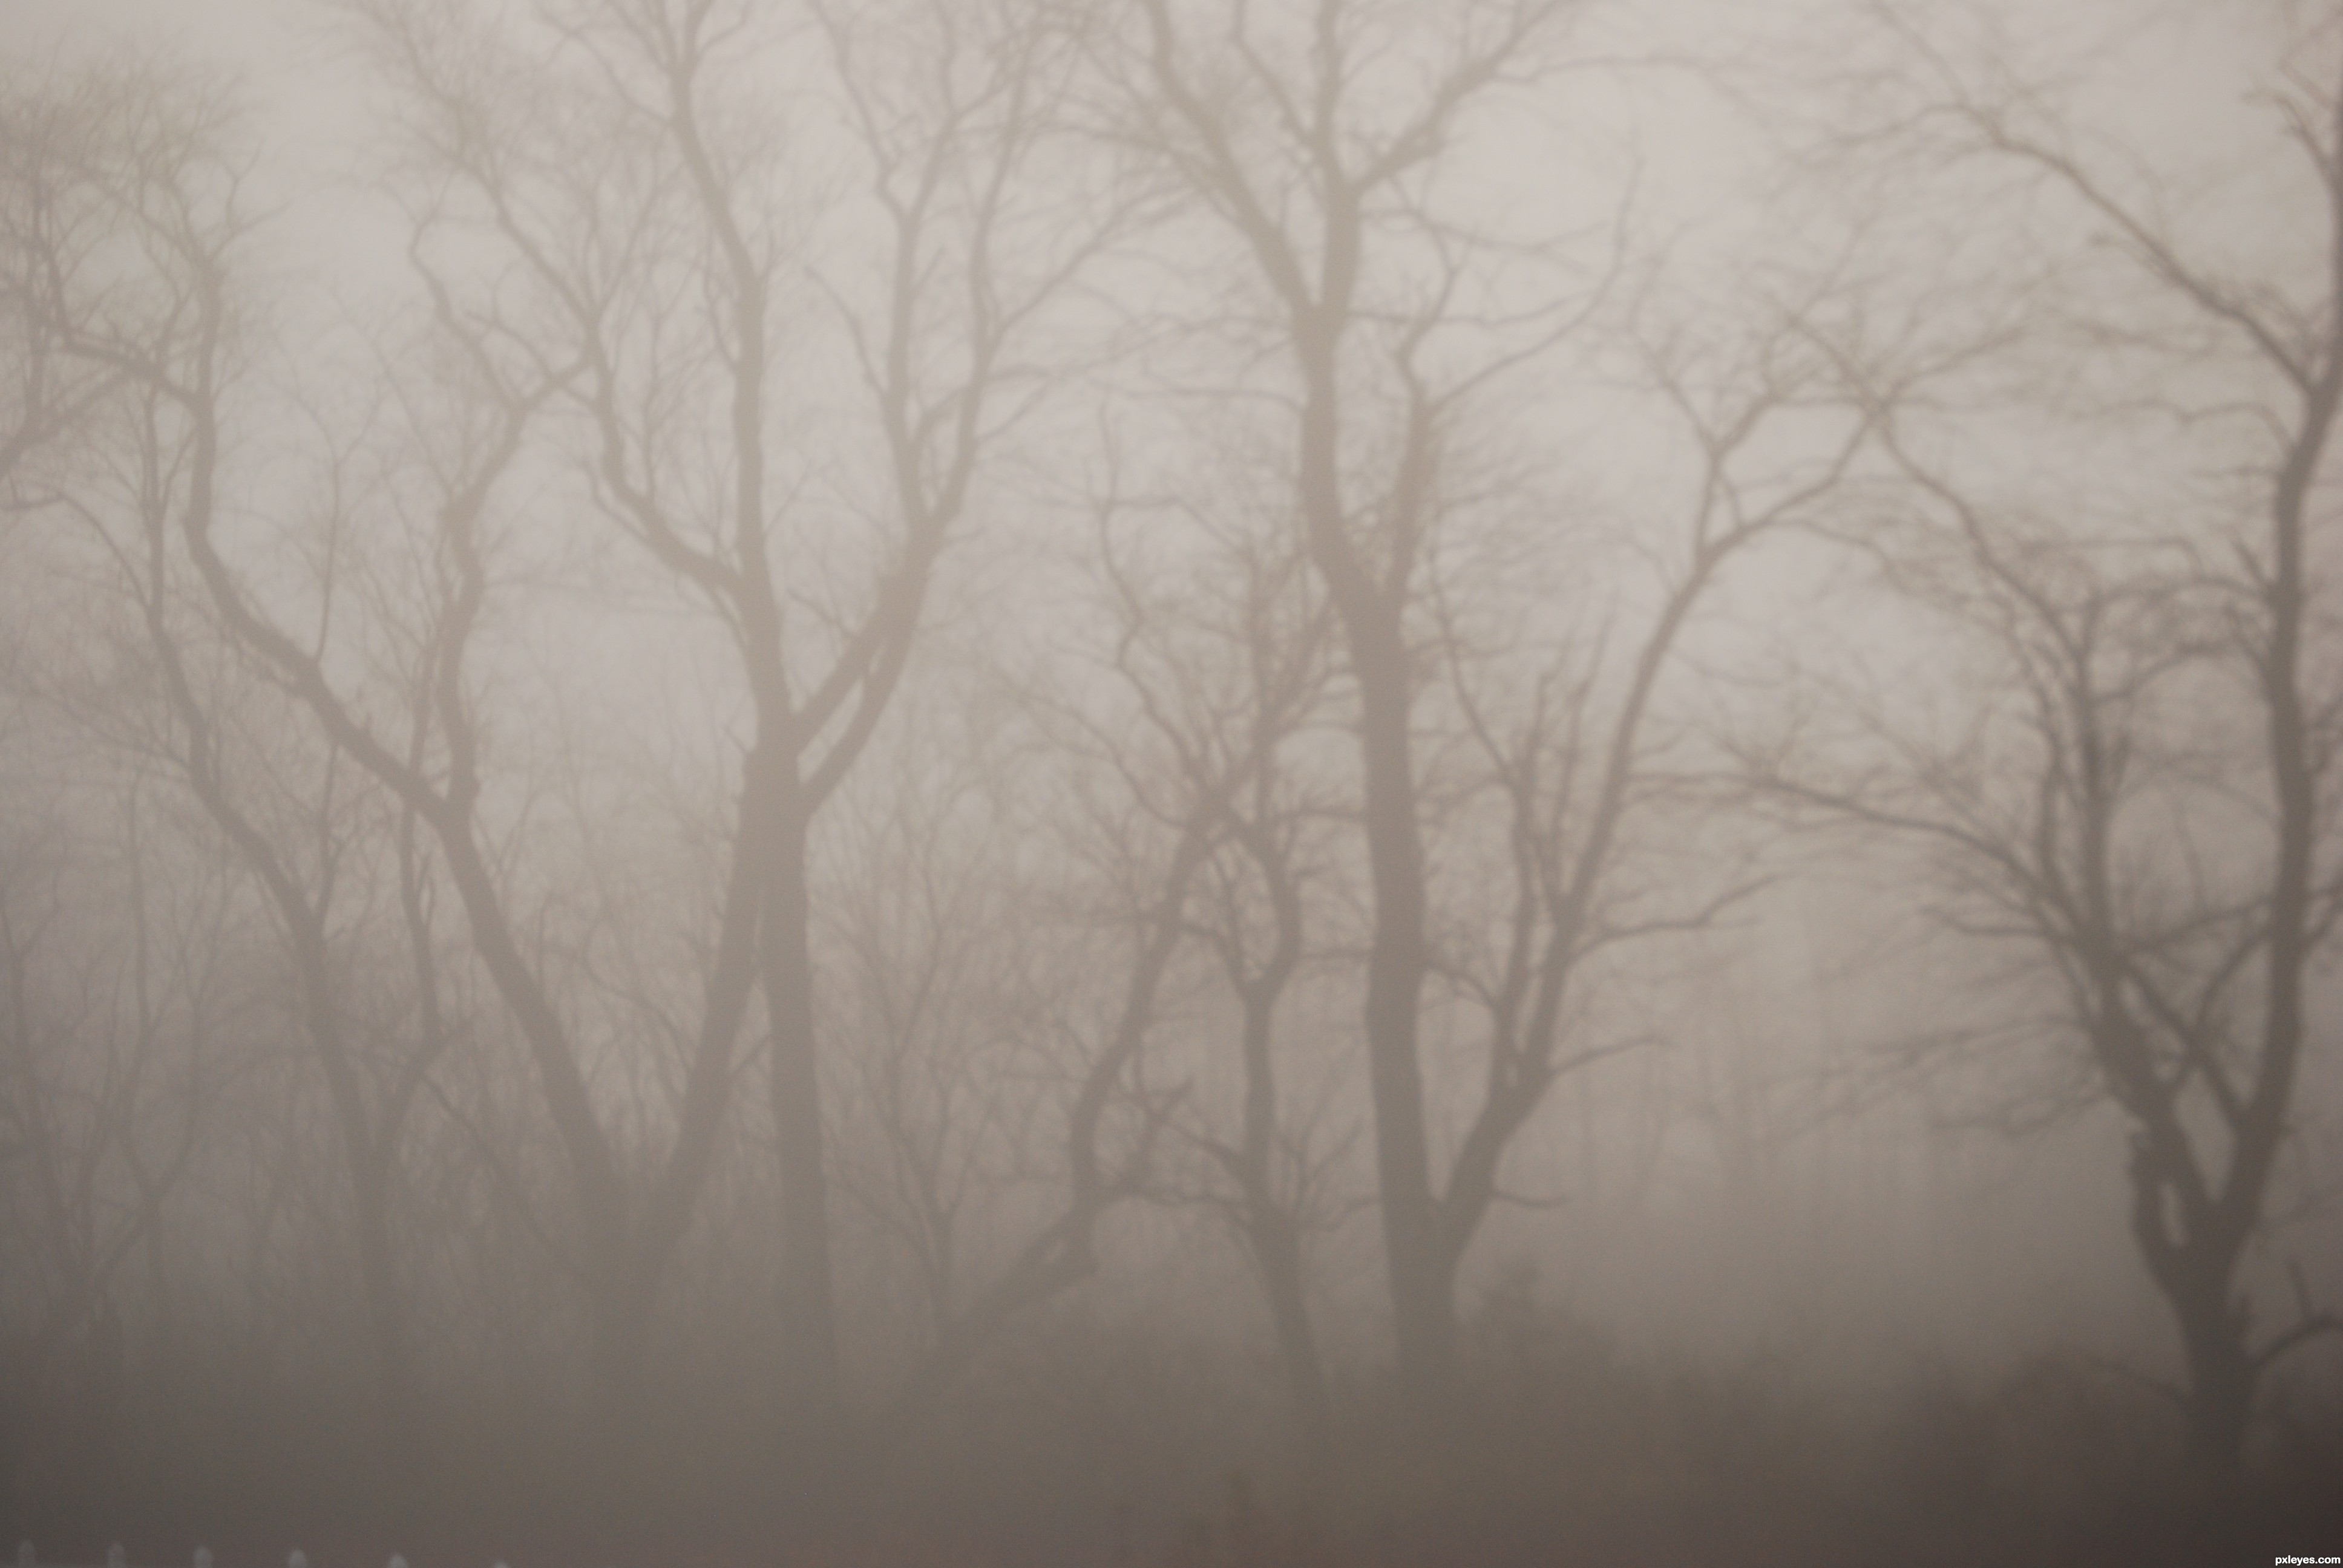 Foggy Tree picture, by WYSIWYG for: fog photography contest.